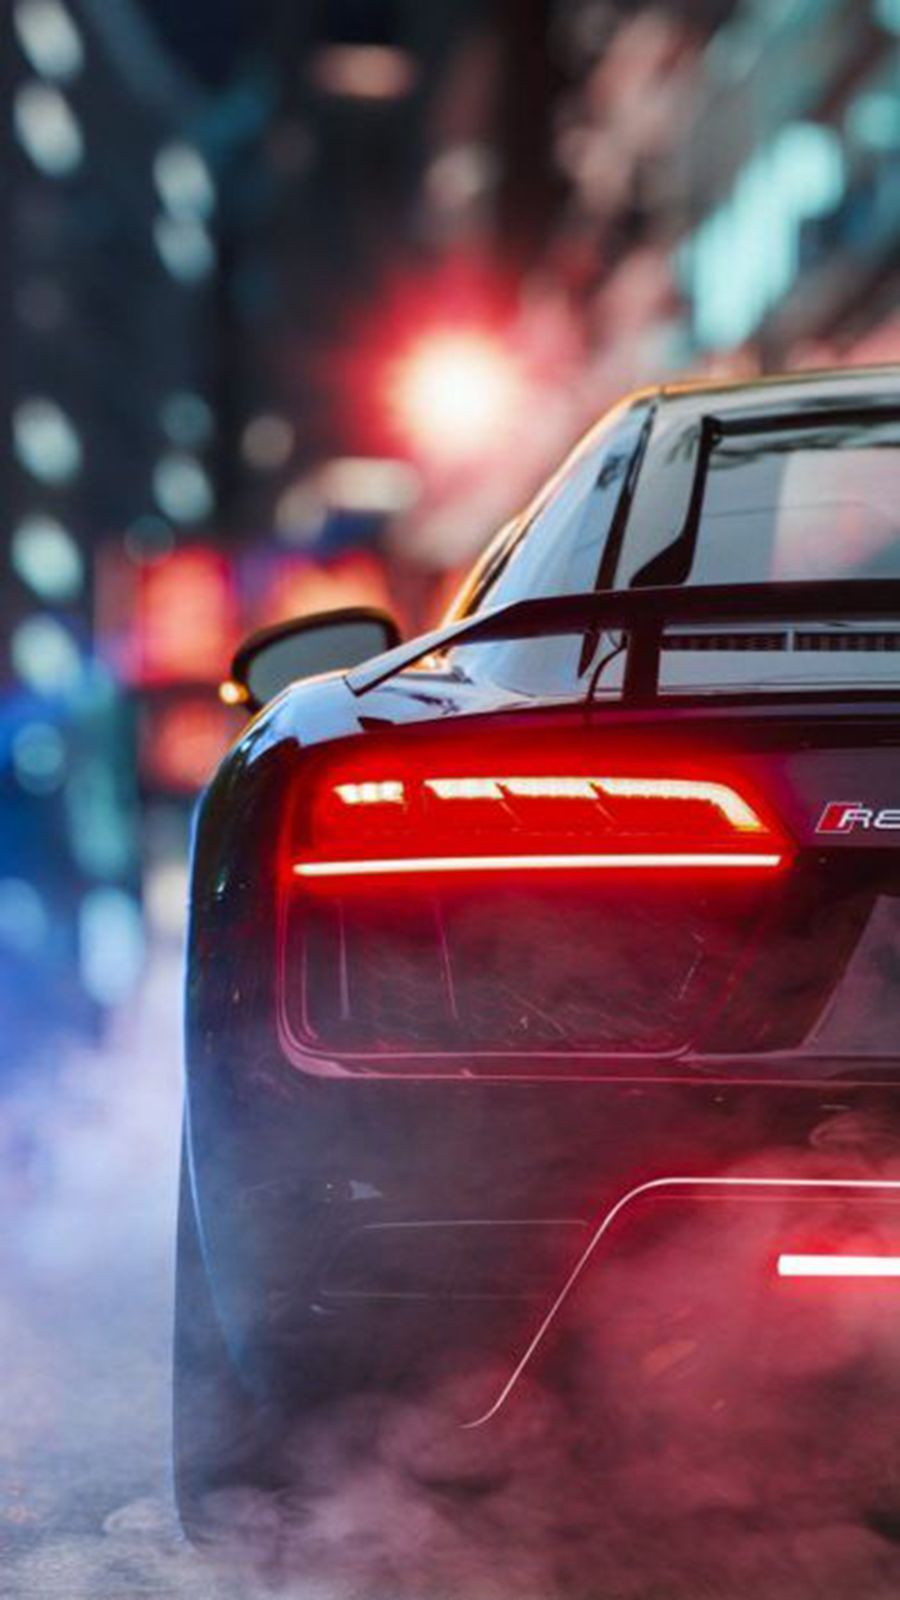 Back View Supercars Hd Wallpapers Free Download Bestwallpapers Super Cars Audi Wallpapers Hd Wallpaper